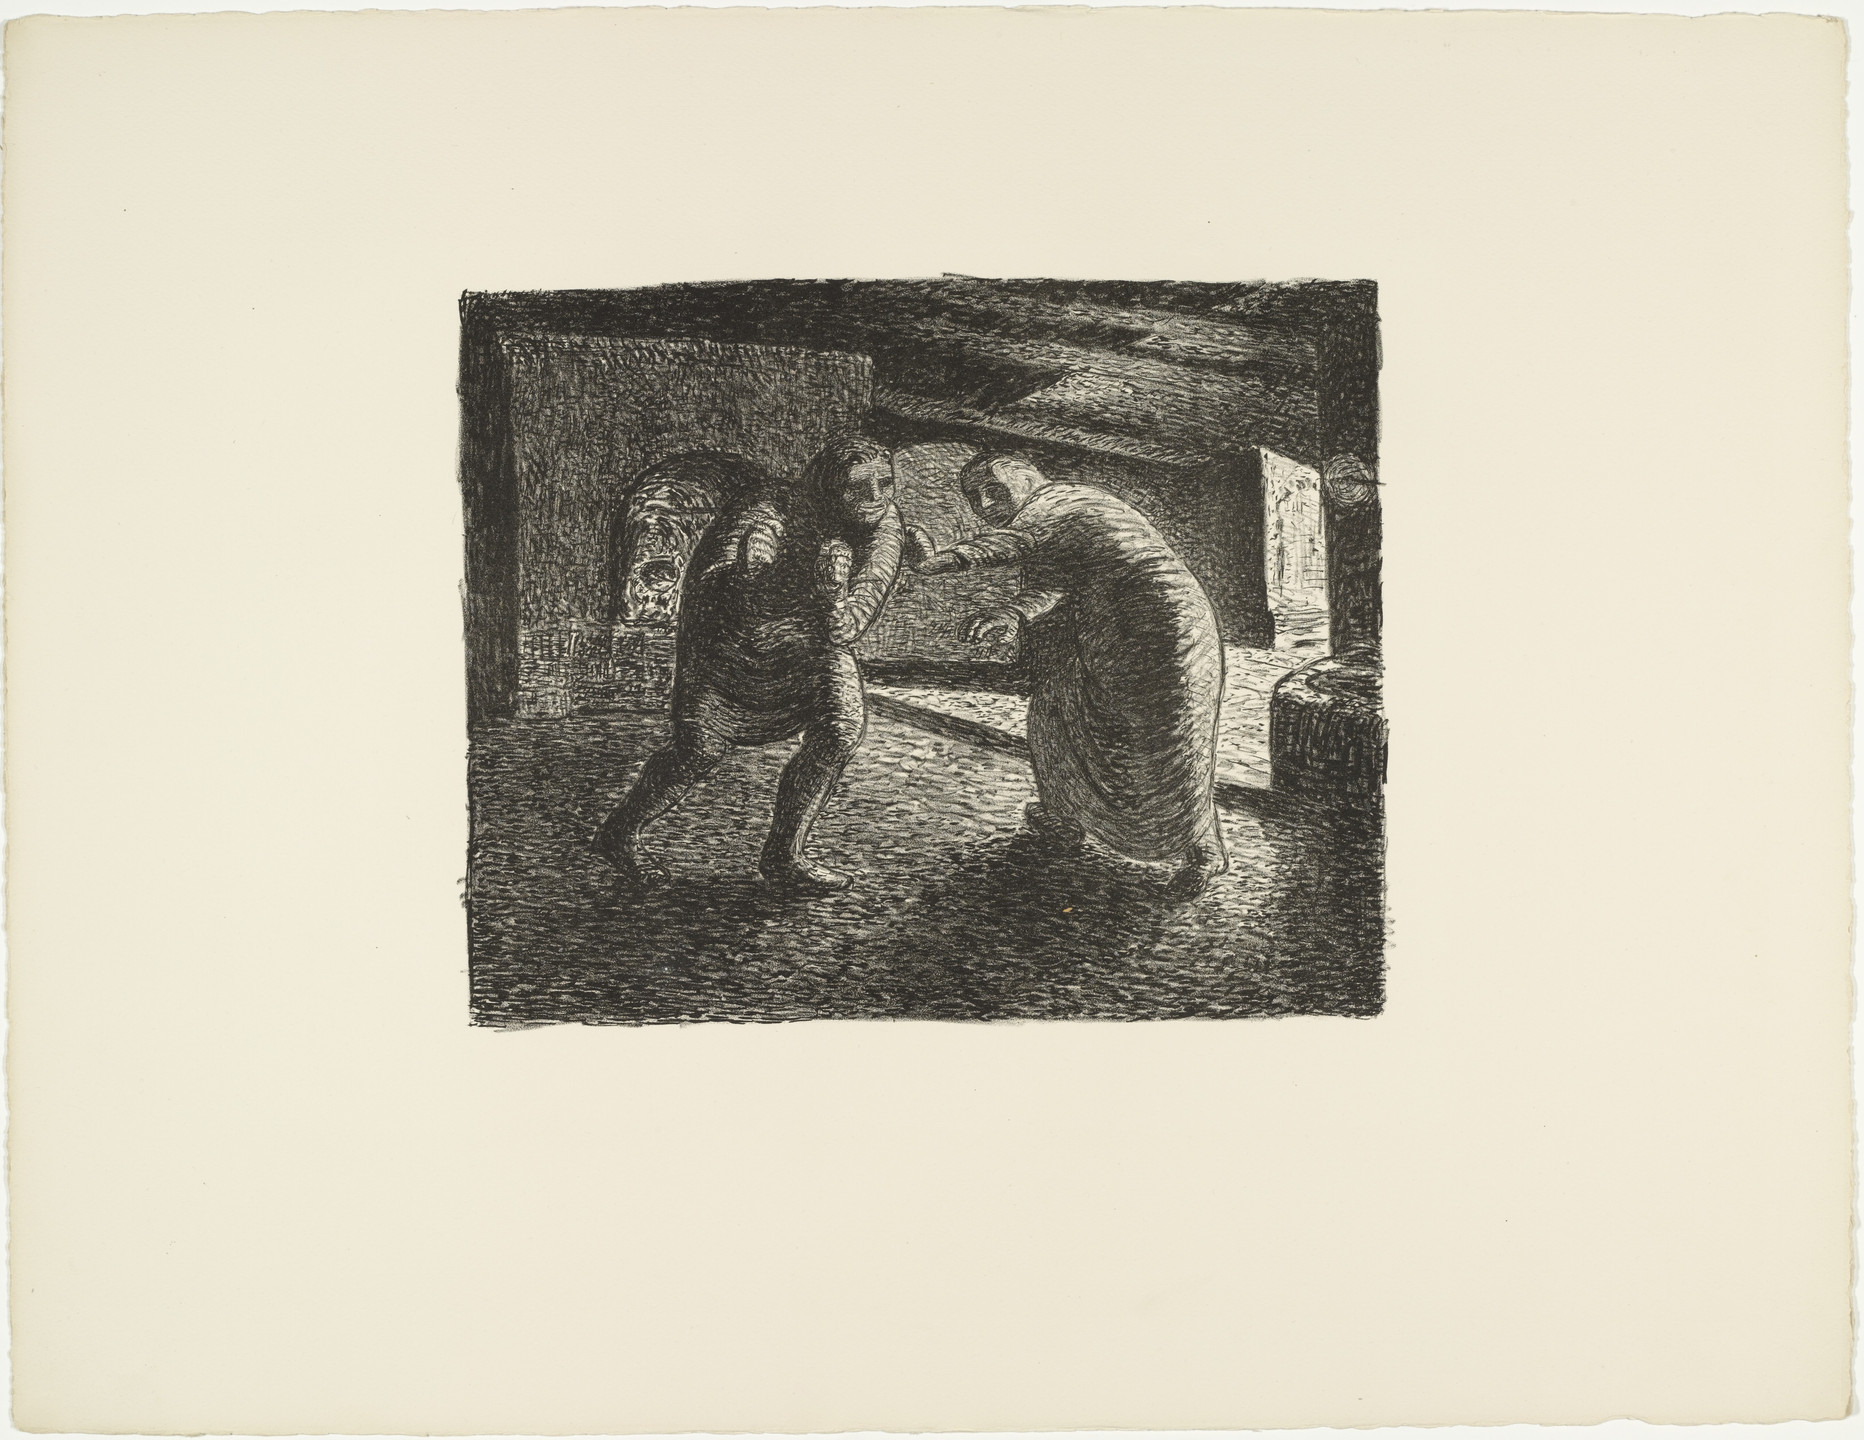 Ernst Barlach. Departure and Defense (Aufbruch und Abwehr) from The Dead Day (Der tote Tag). (1910-11, published 1912)